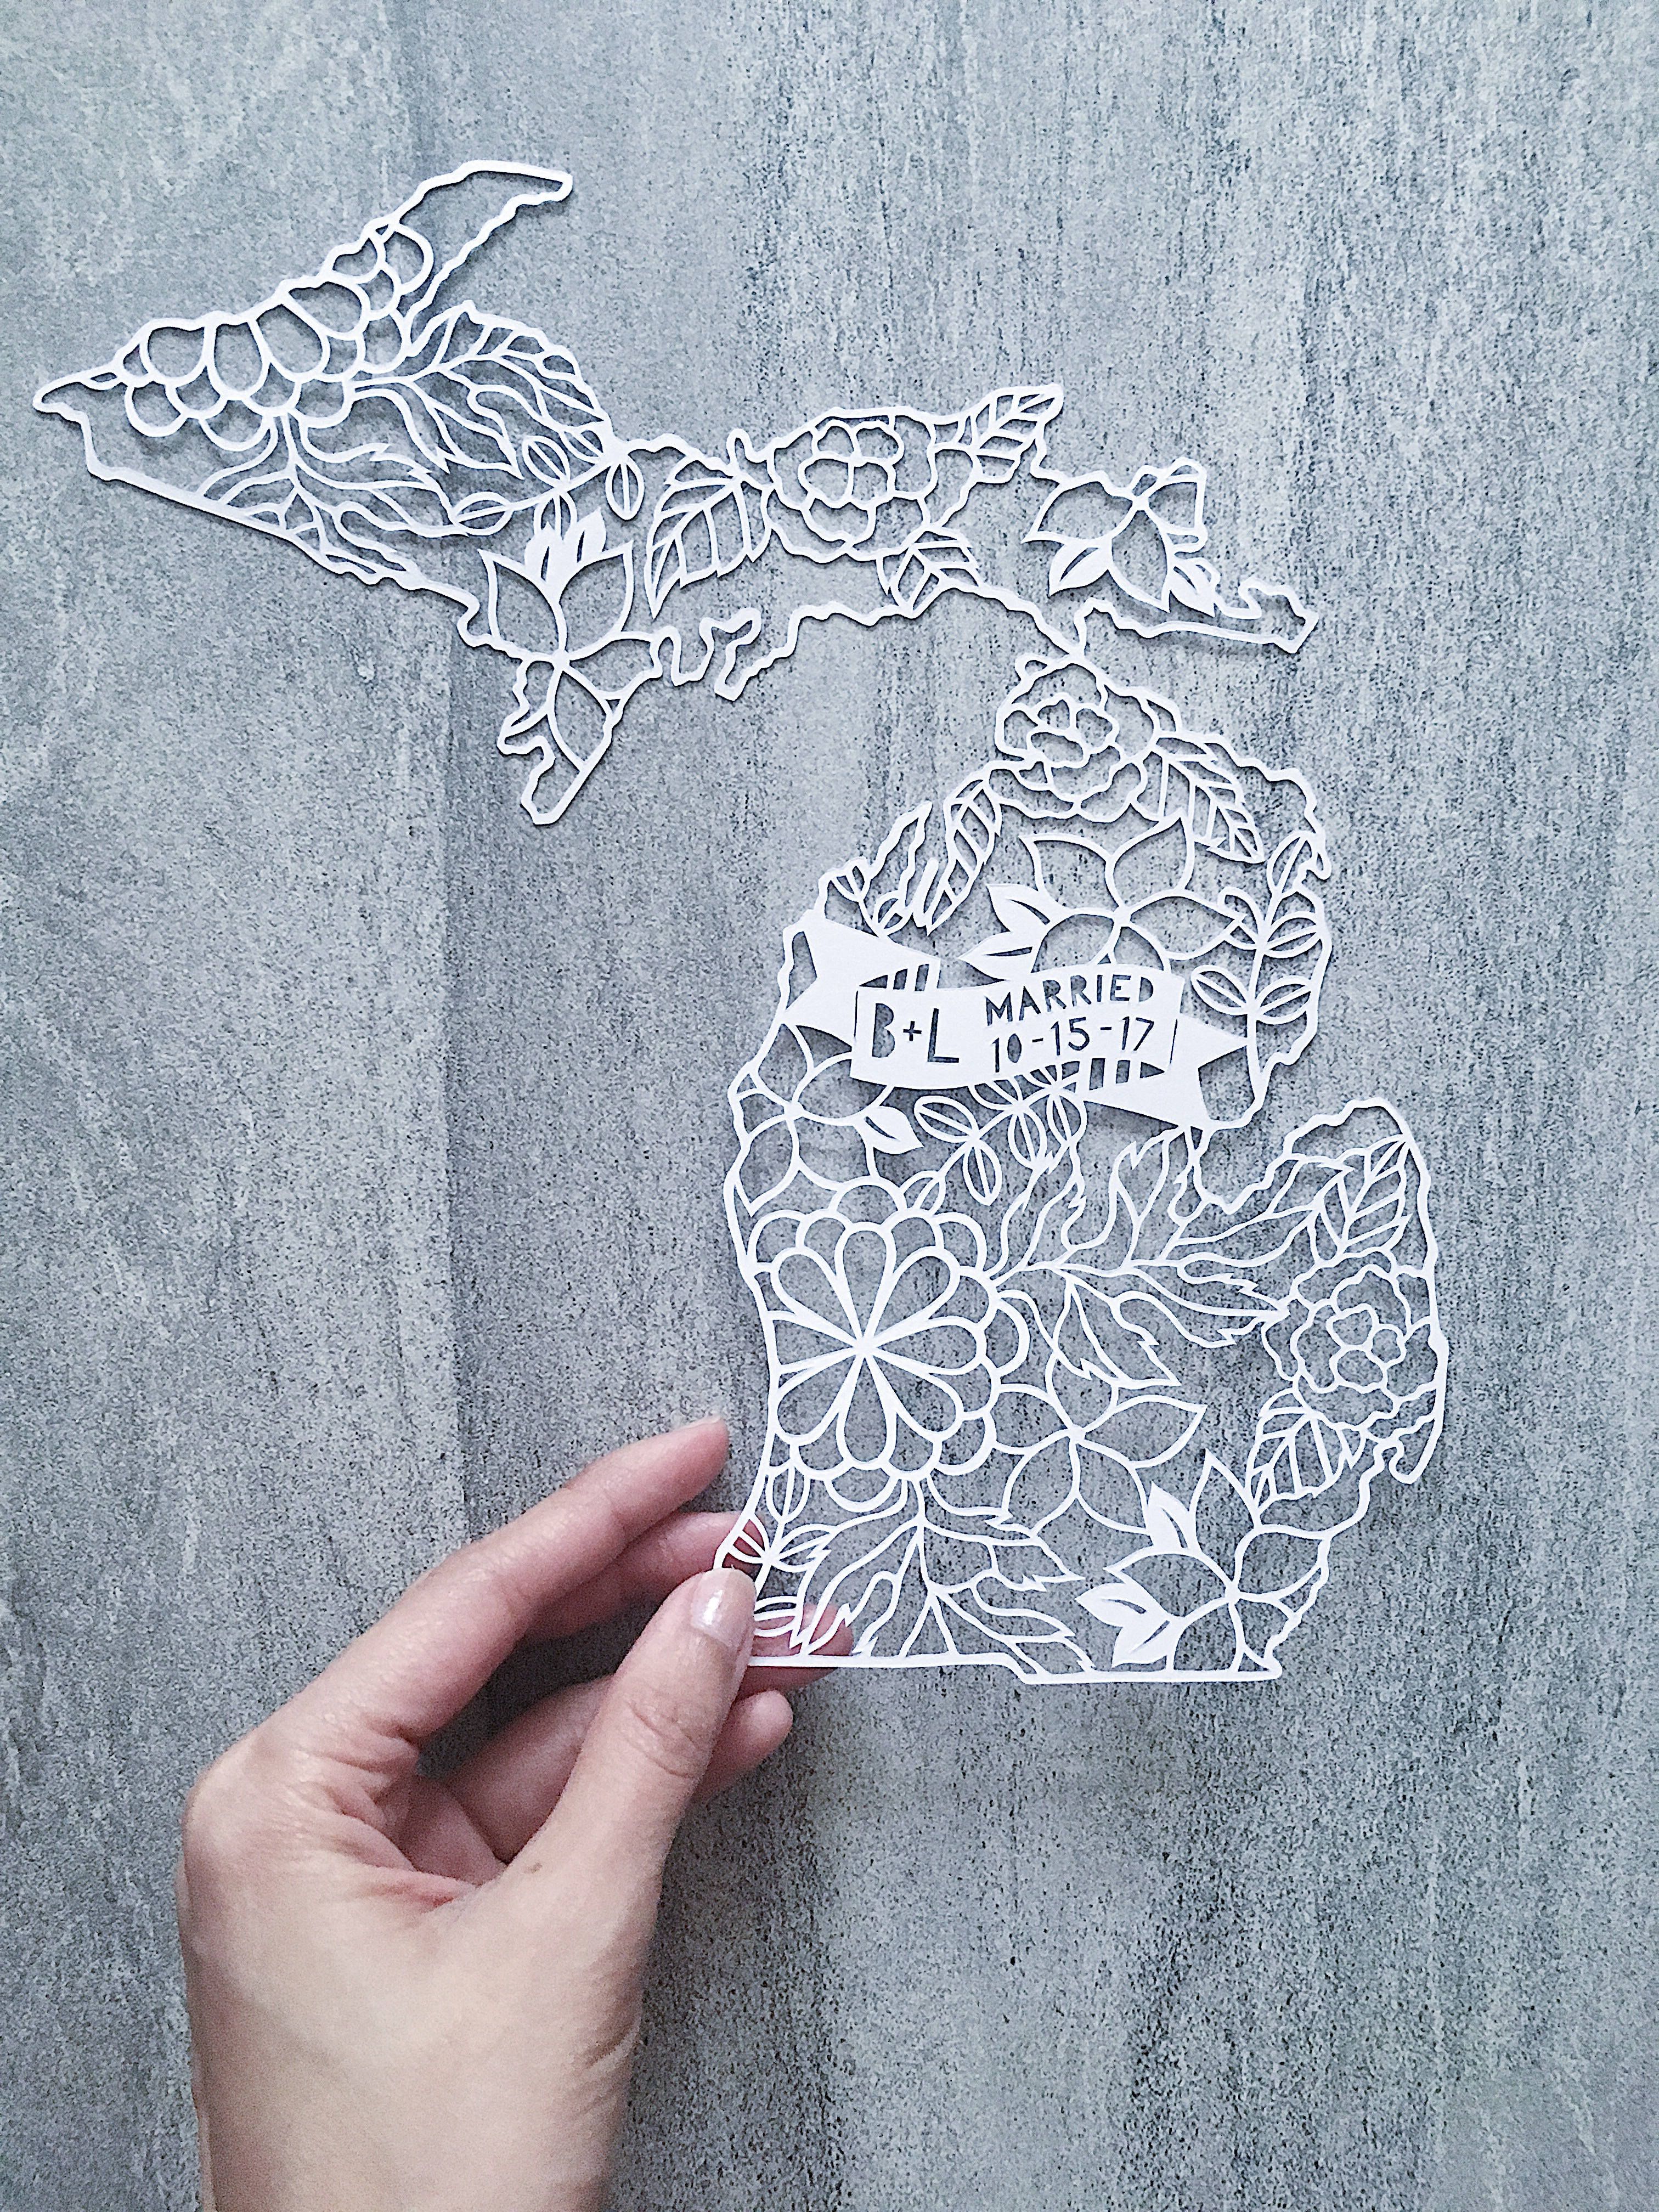 papercut-art-custom-michigan-map-wedding-anniversary-gift-papercutting-home-decor (2)